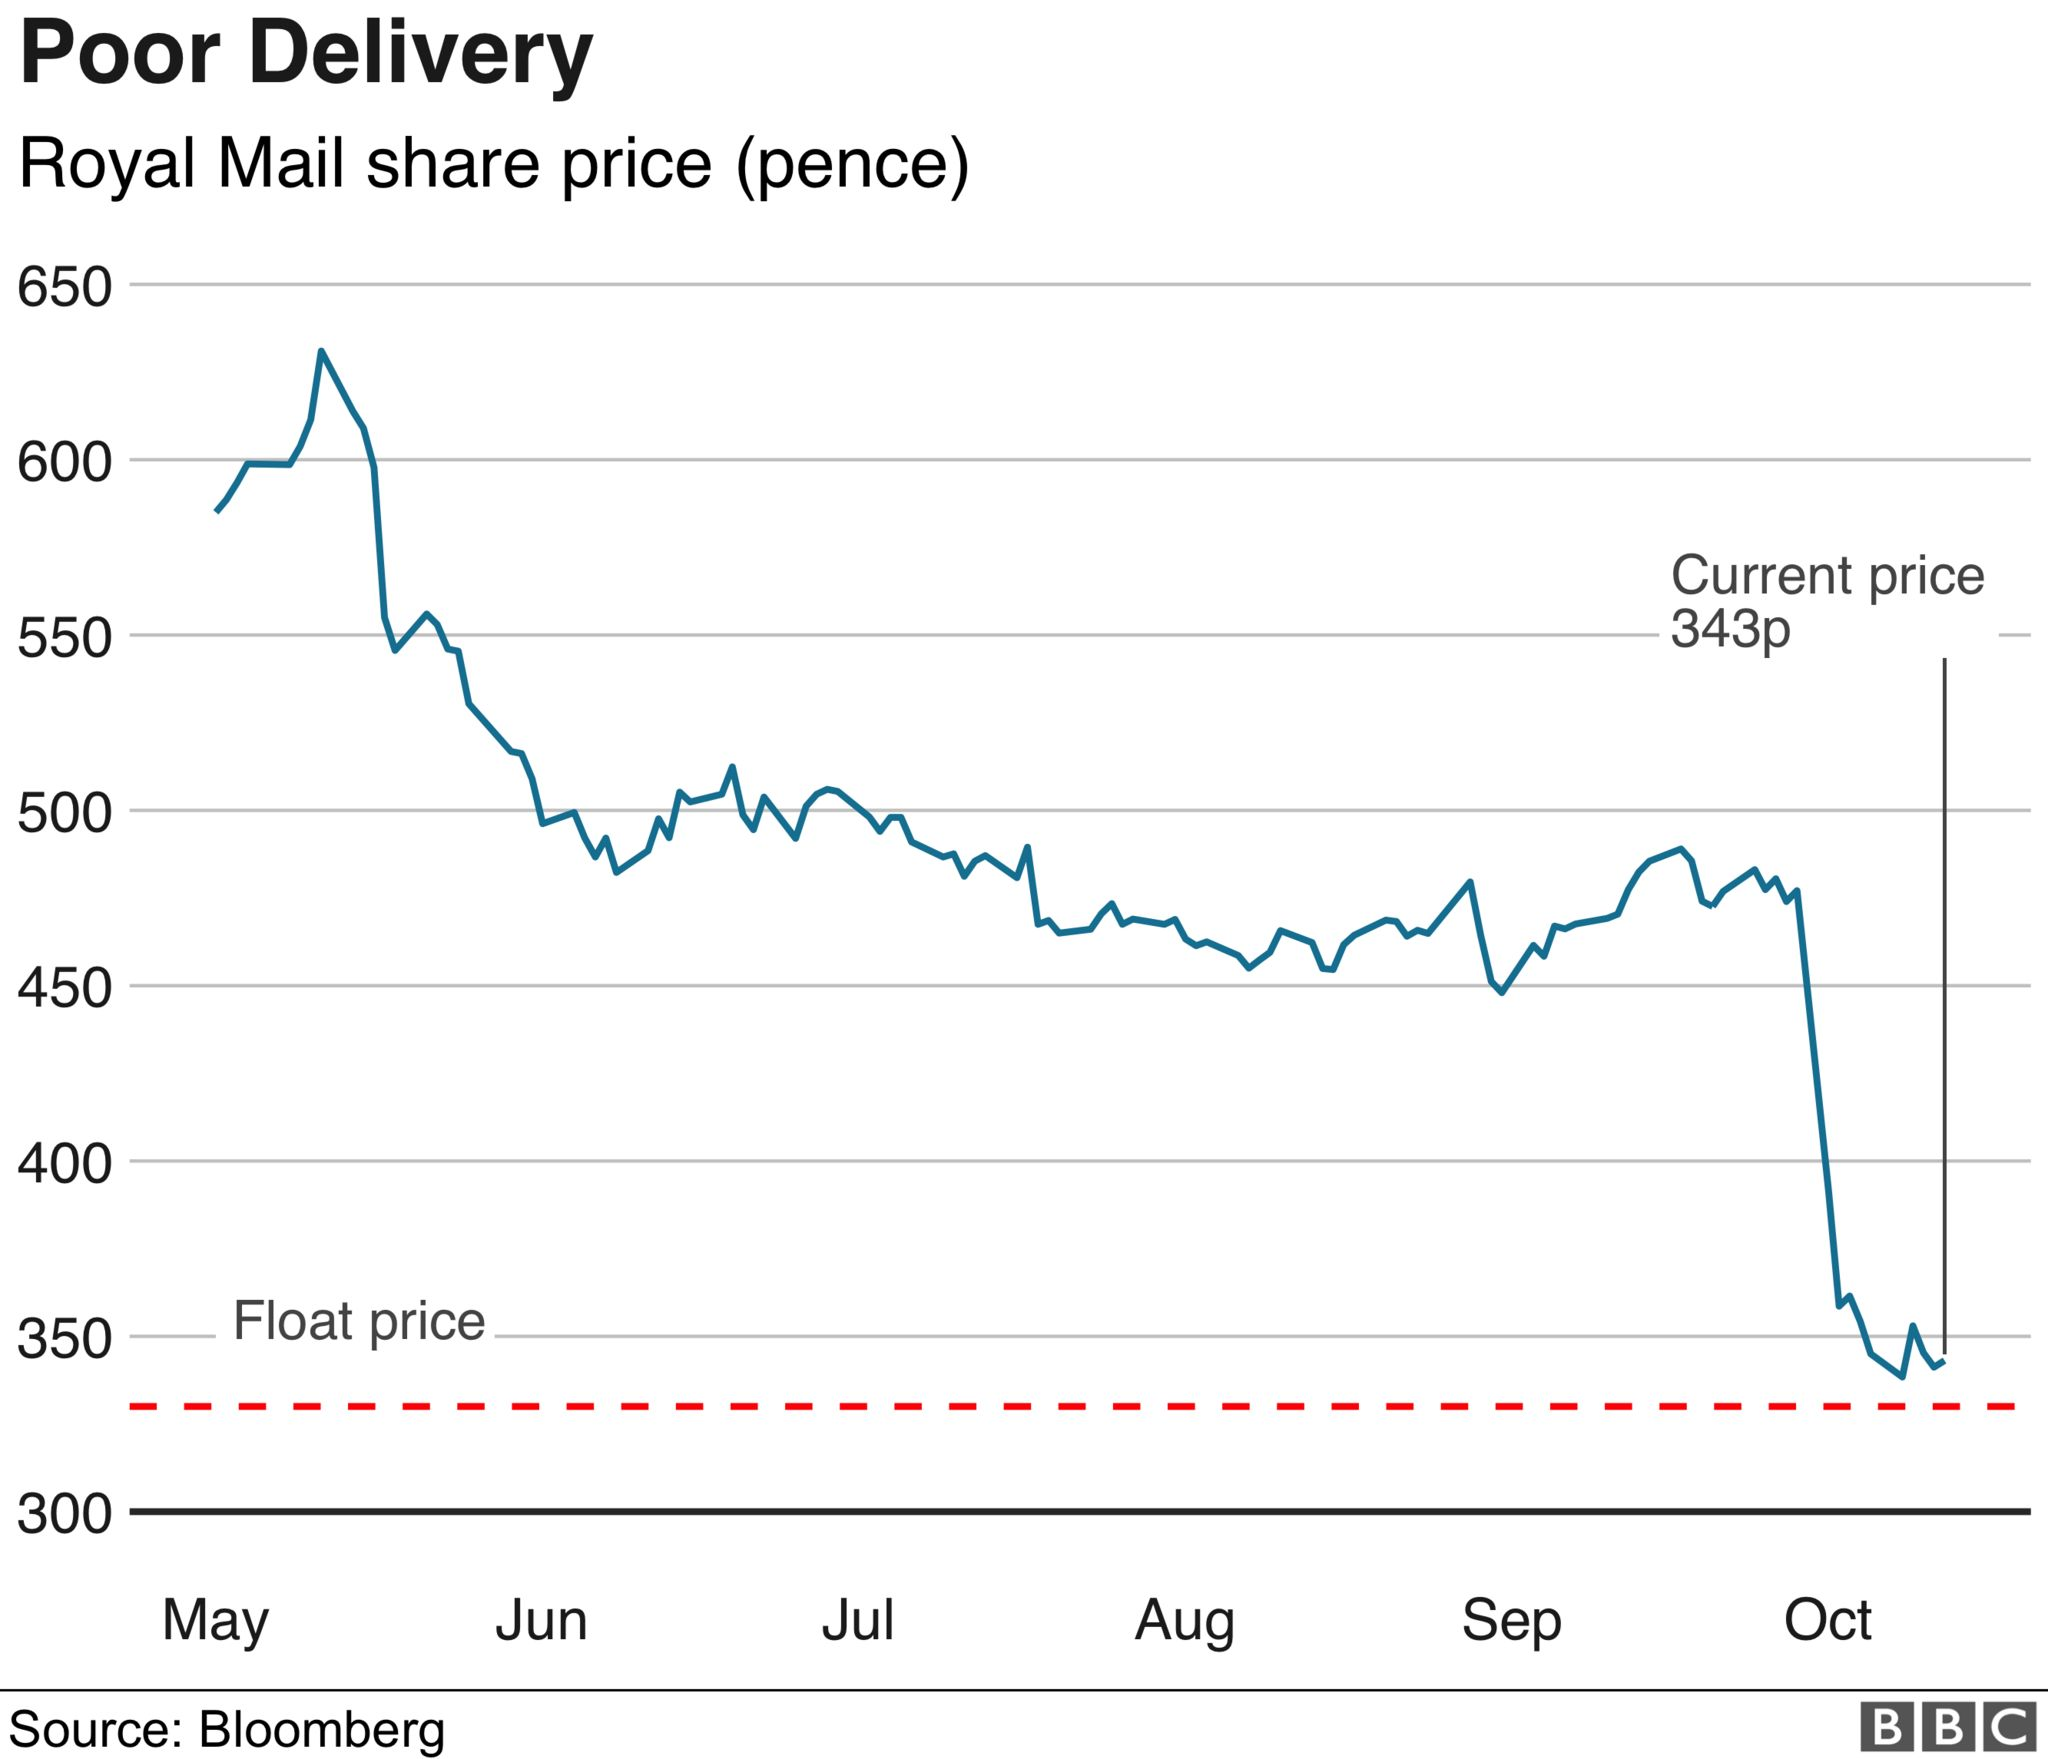 Royal Mail share price chart